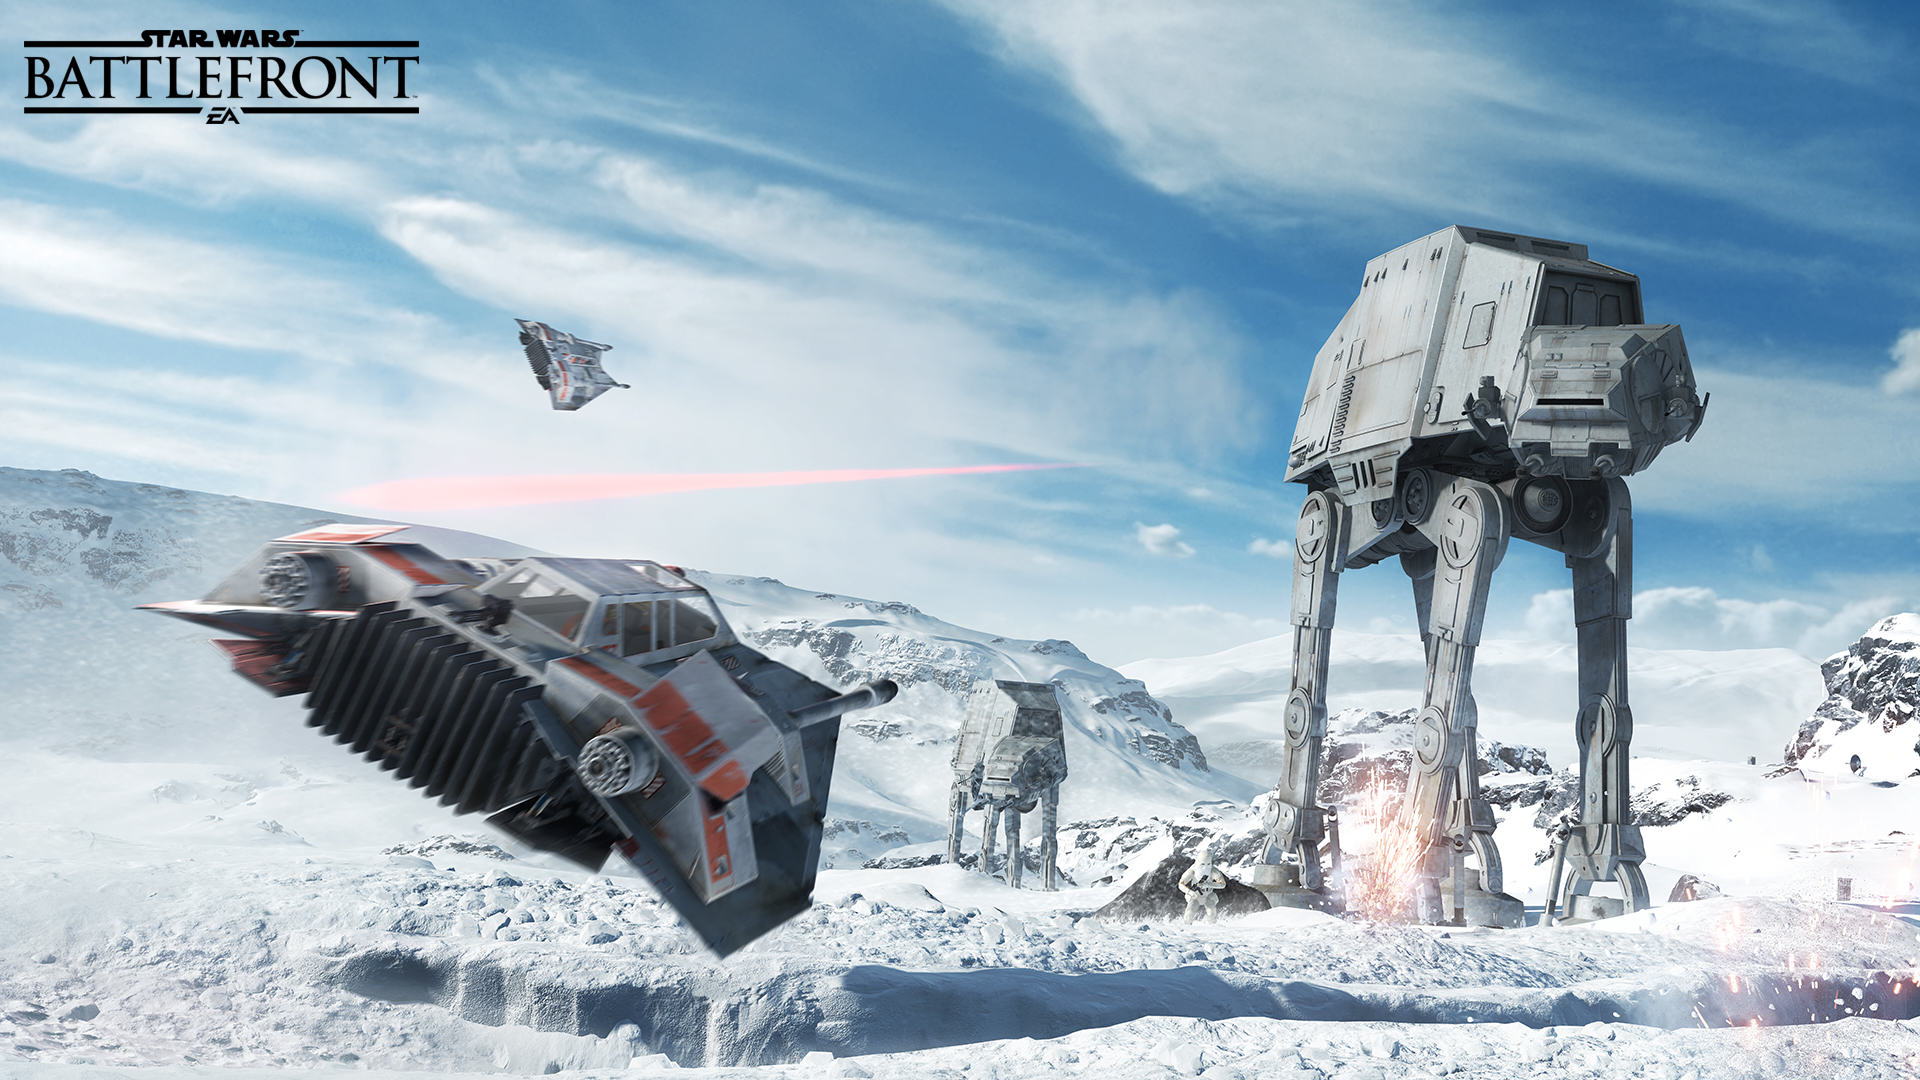 5 Things You Should Know Before The Star Wars Battlefront Beta UNILAD Star Wars Battlefront  4 17 A6